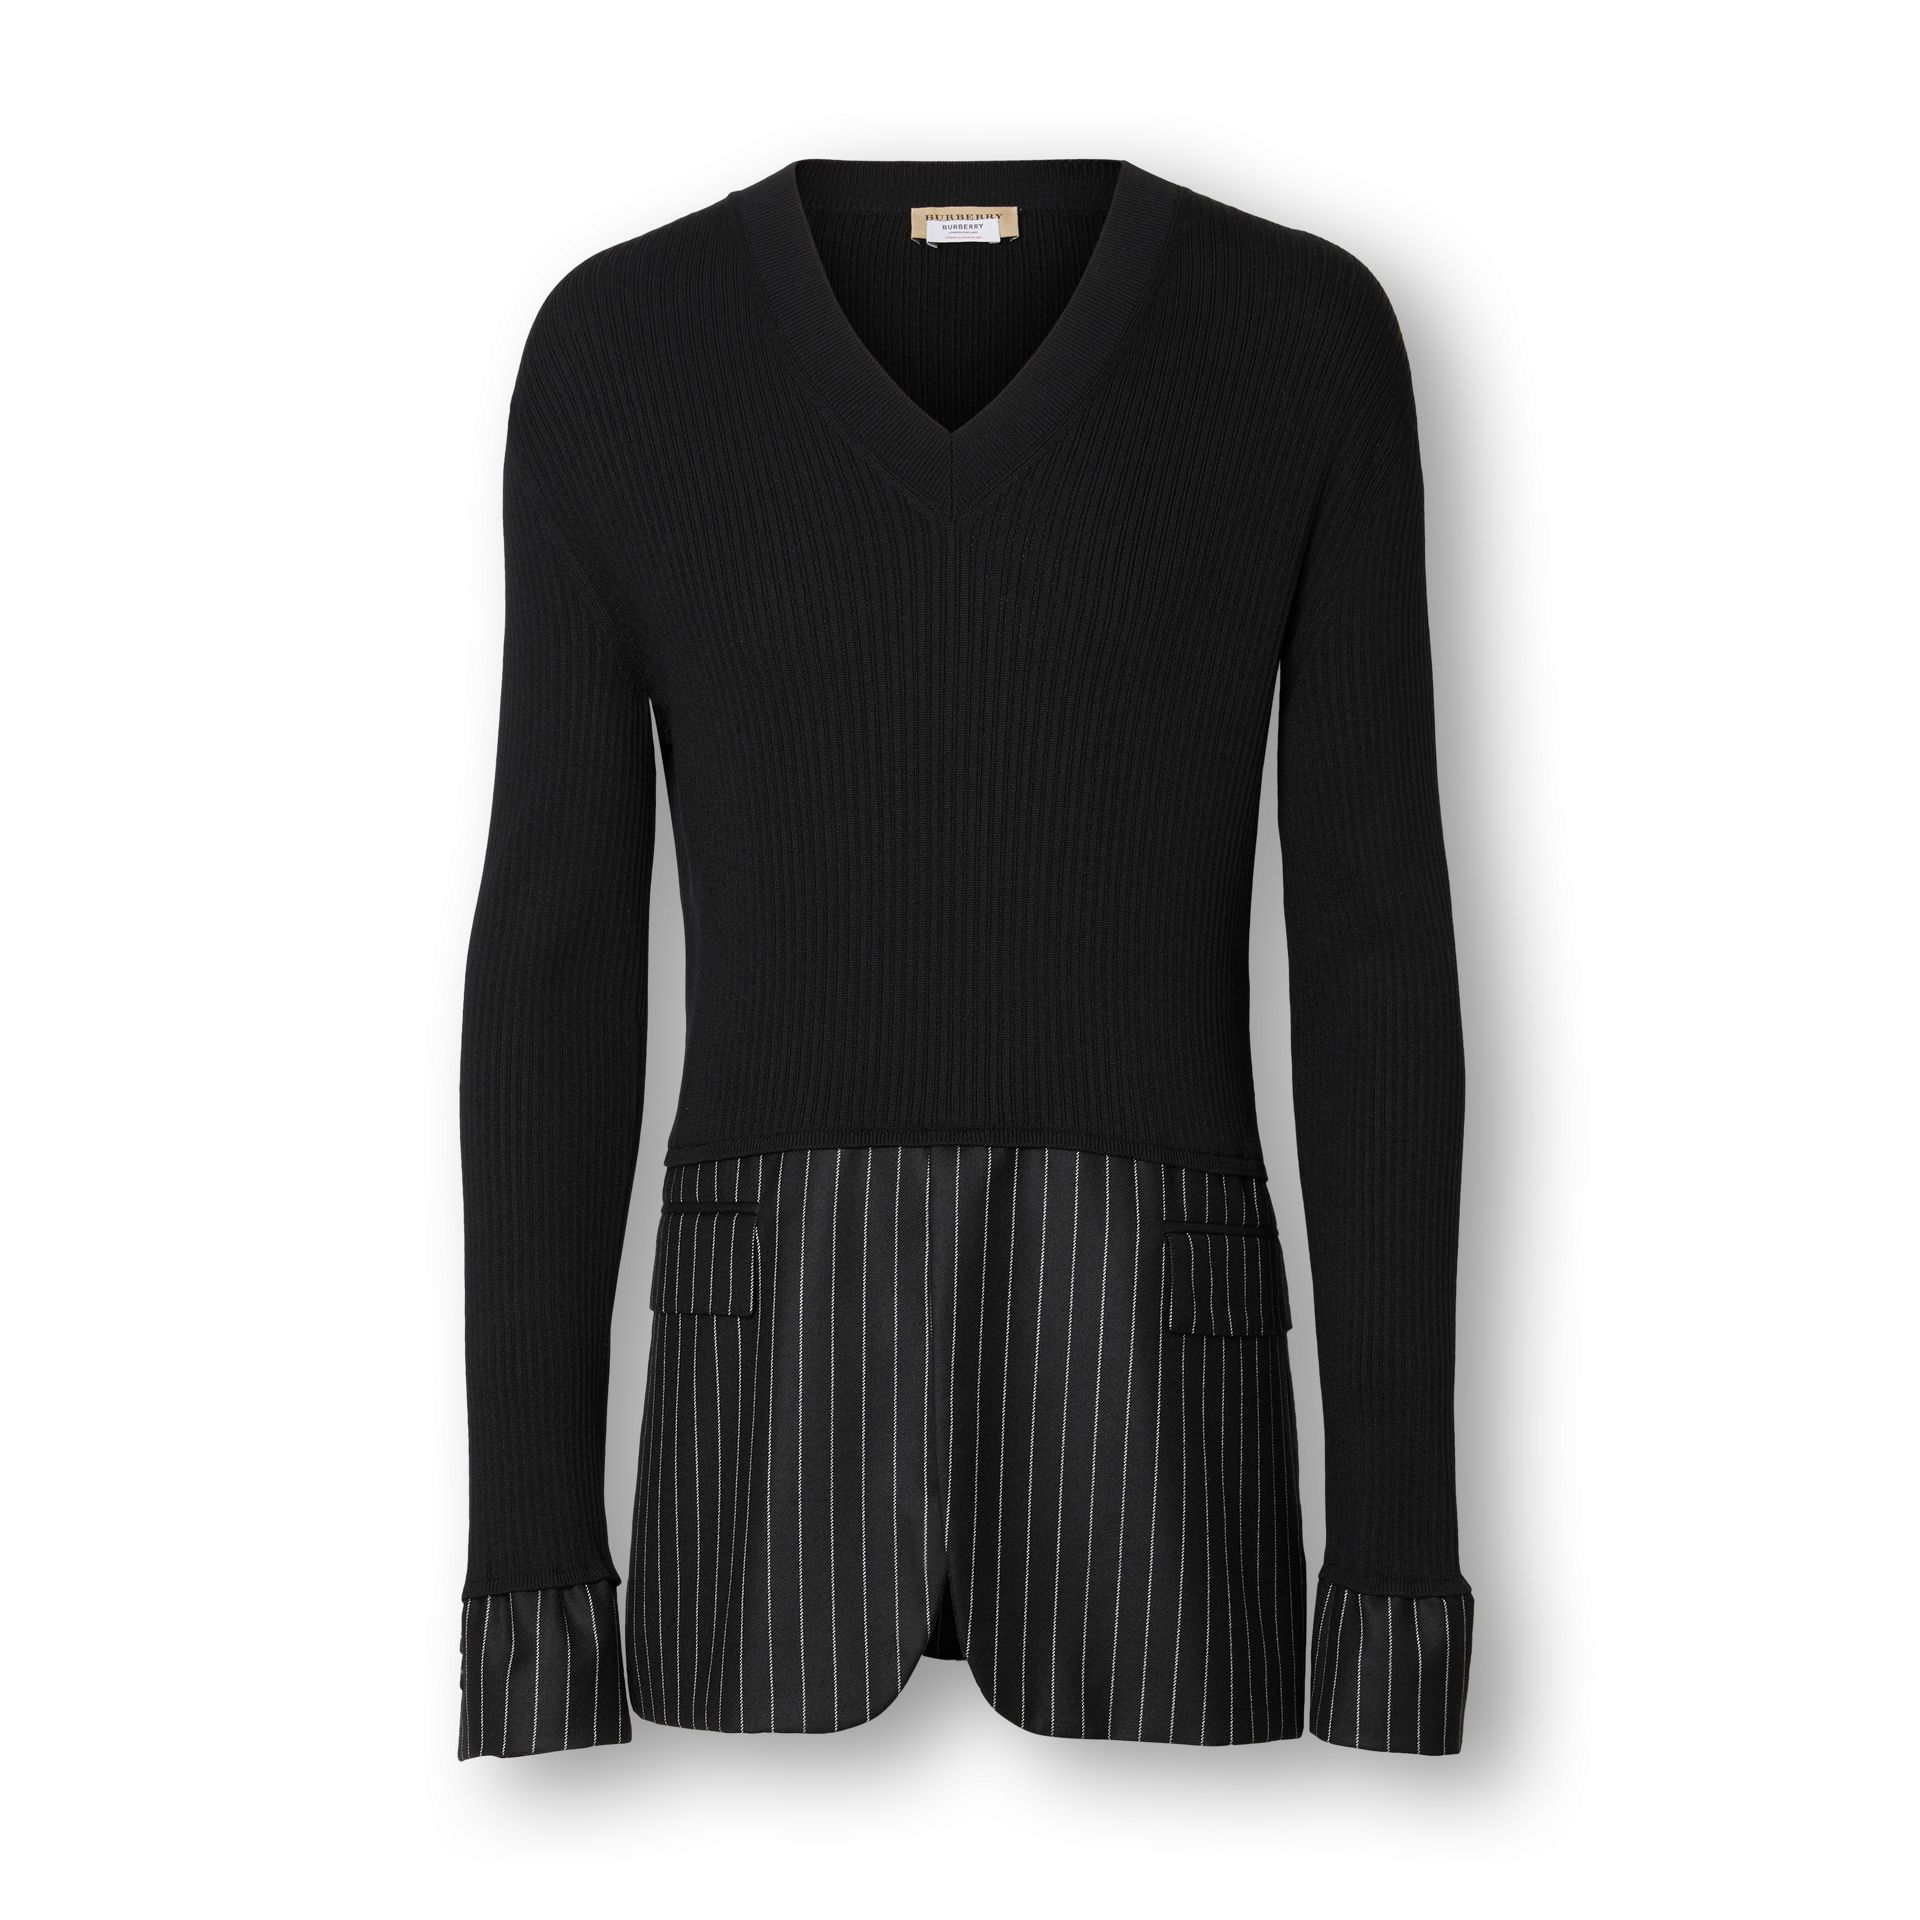 Tailored Panel Rib Knit Silk Blend Sweater in Black | Burberry Singapore - gallery image 3